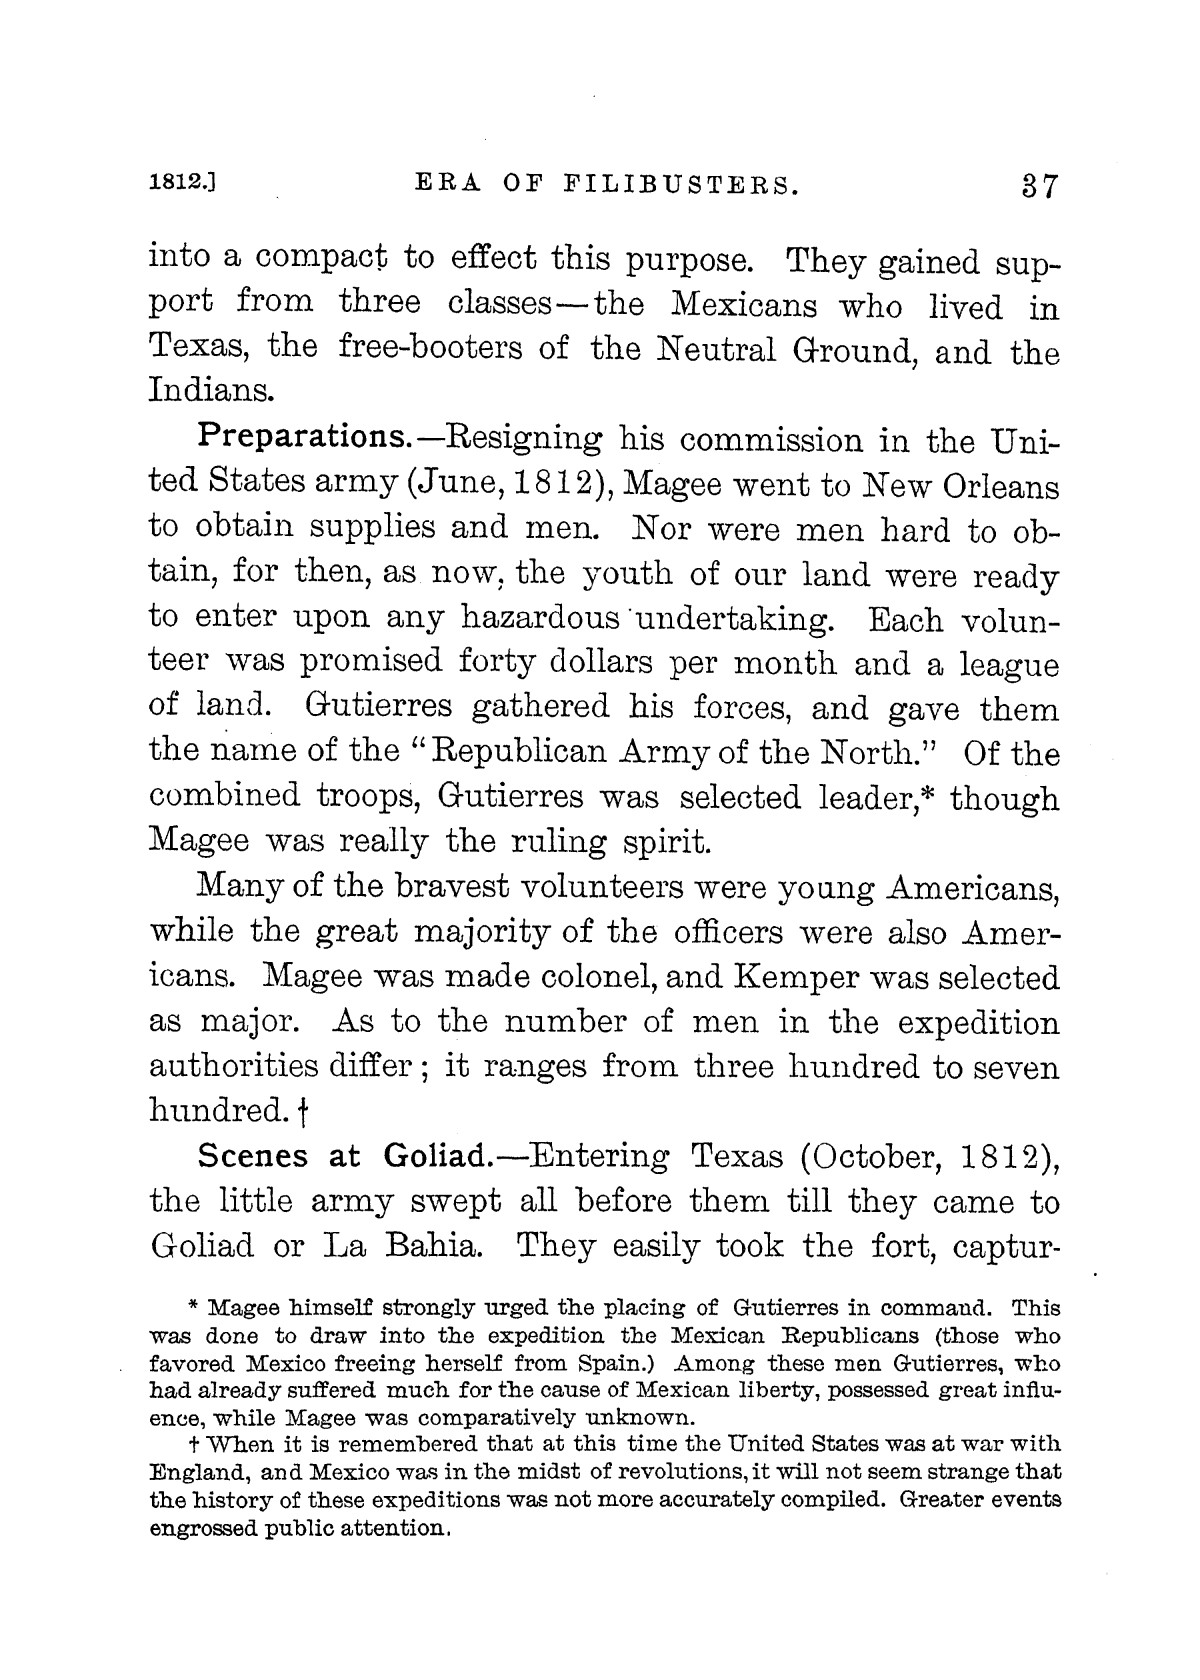 A new history of Texas for schools : also for general reading and for teachers preparing themselves for examination                                                                                                      [Sequence #]: 51 of 412